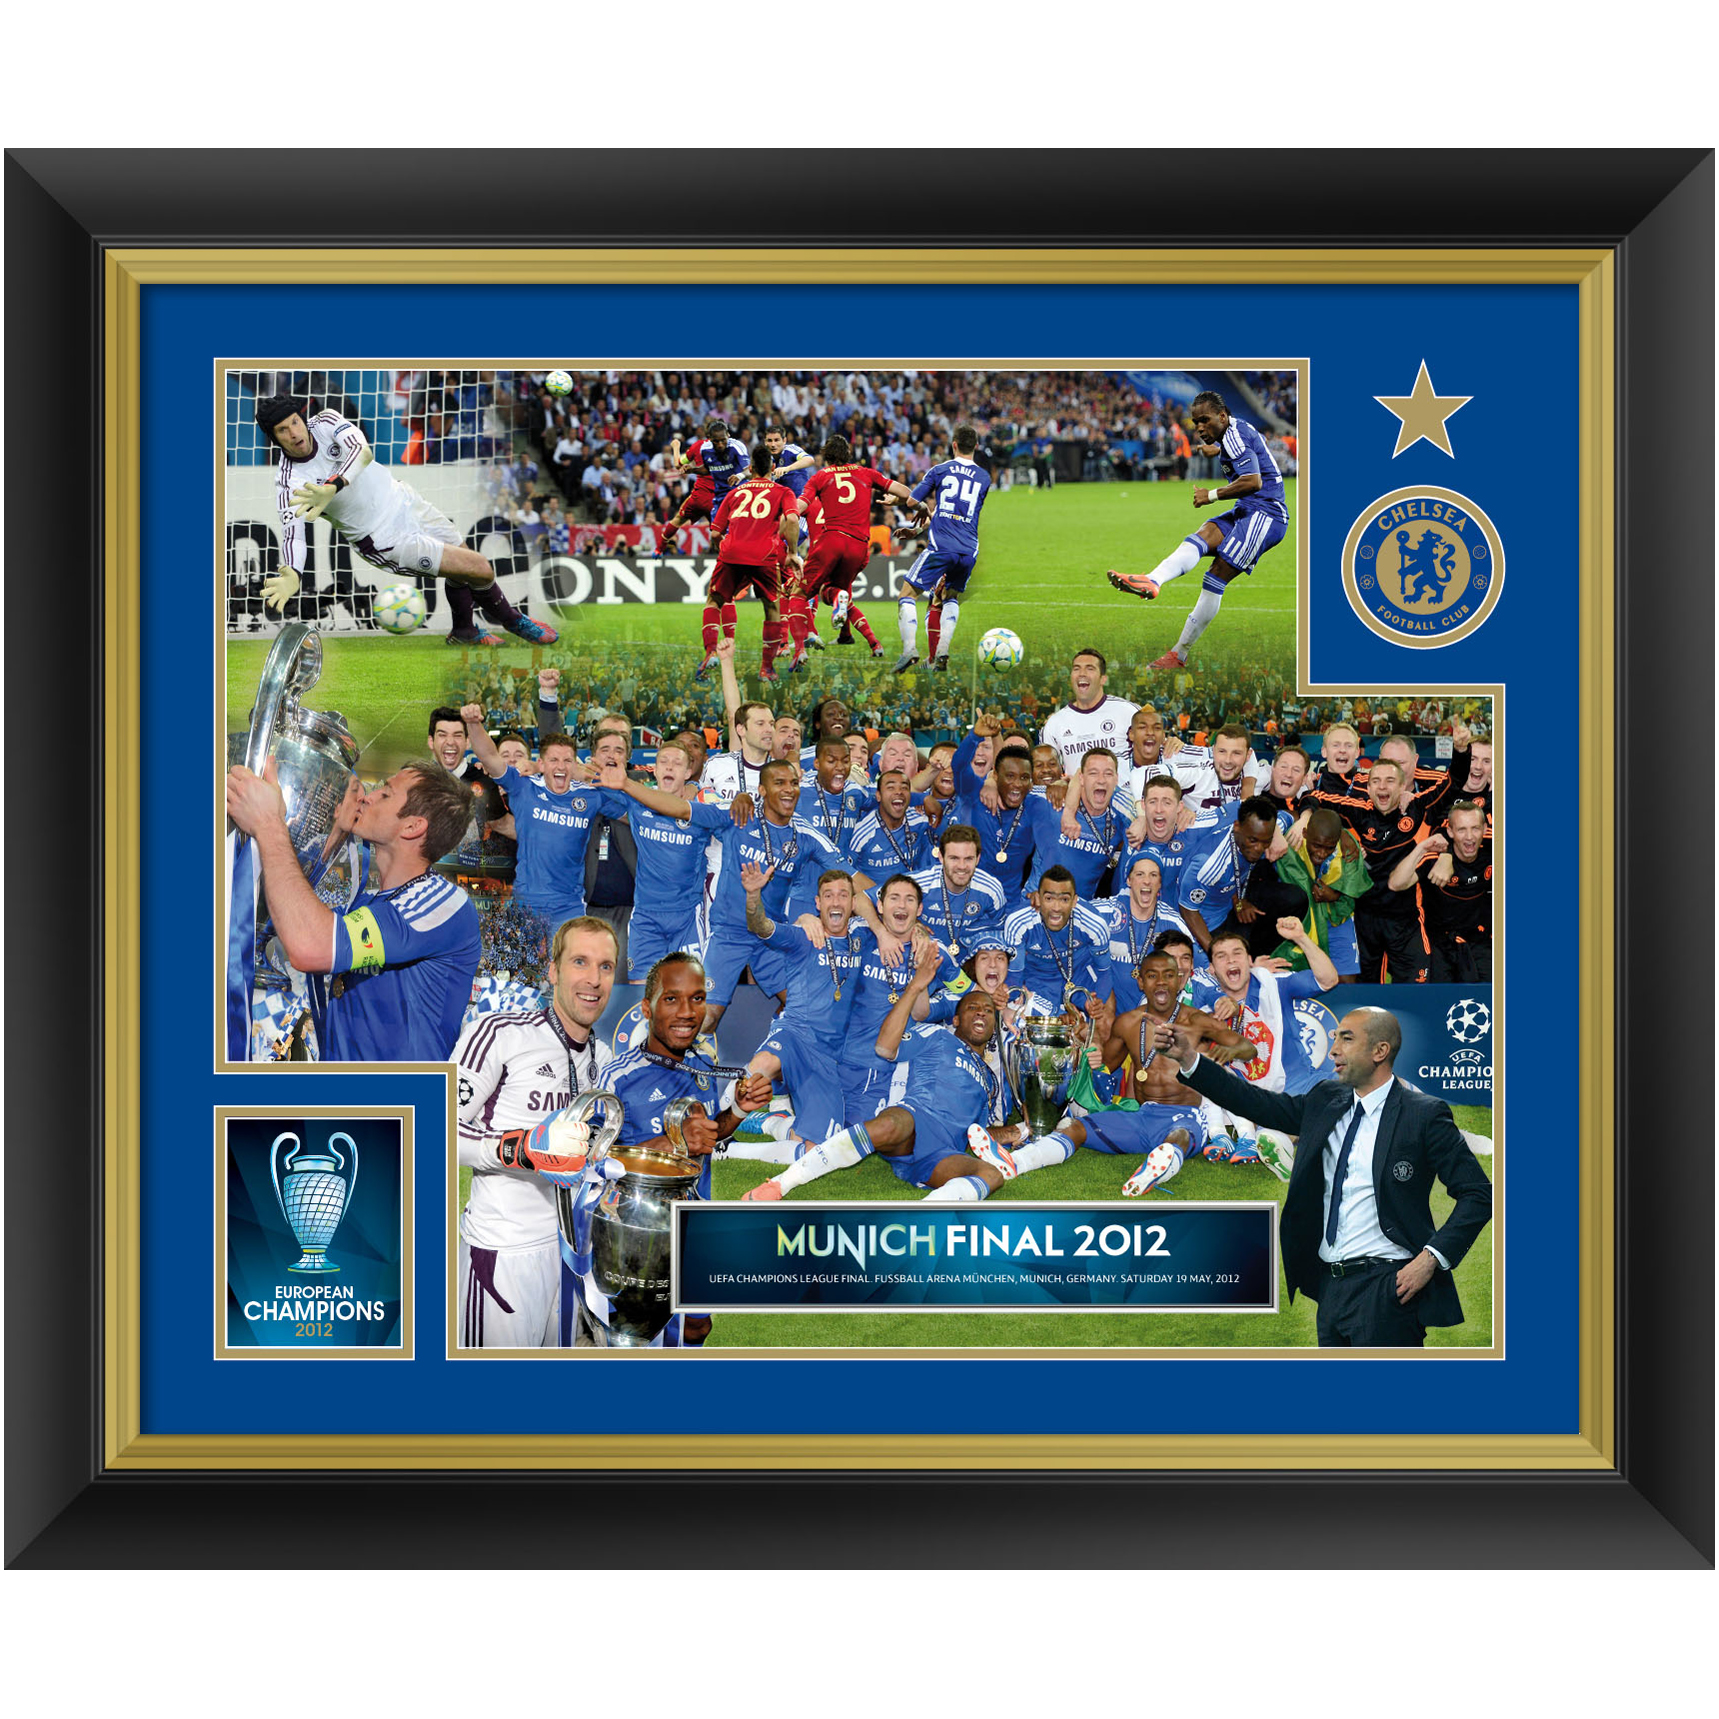 Chelsea Champions Of Europe 2012 Framed Celebration Montage - 20 x 16